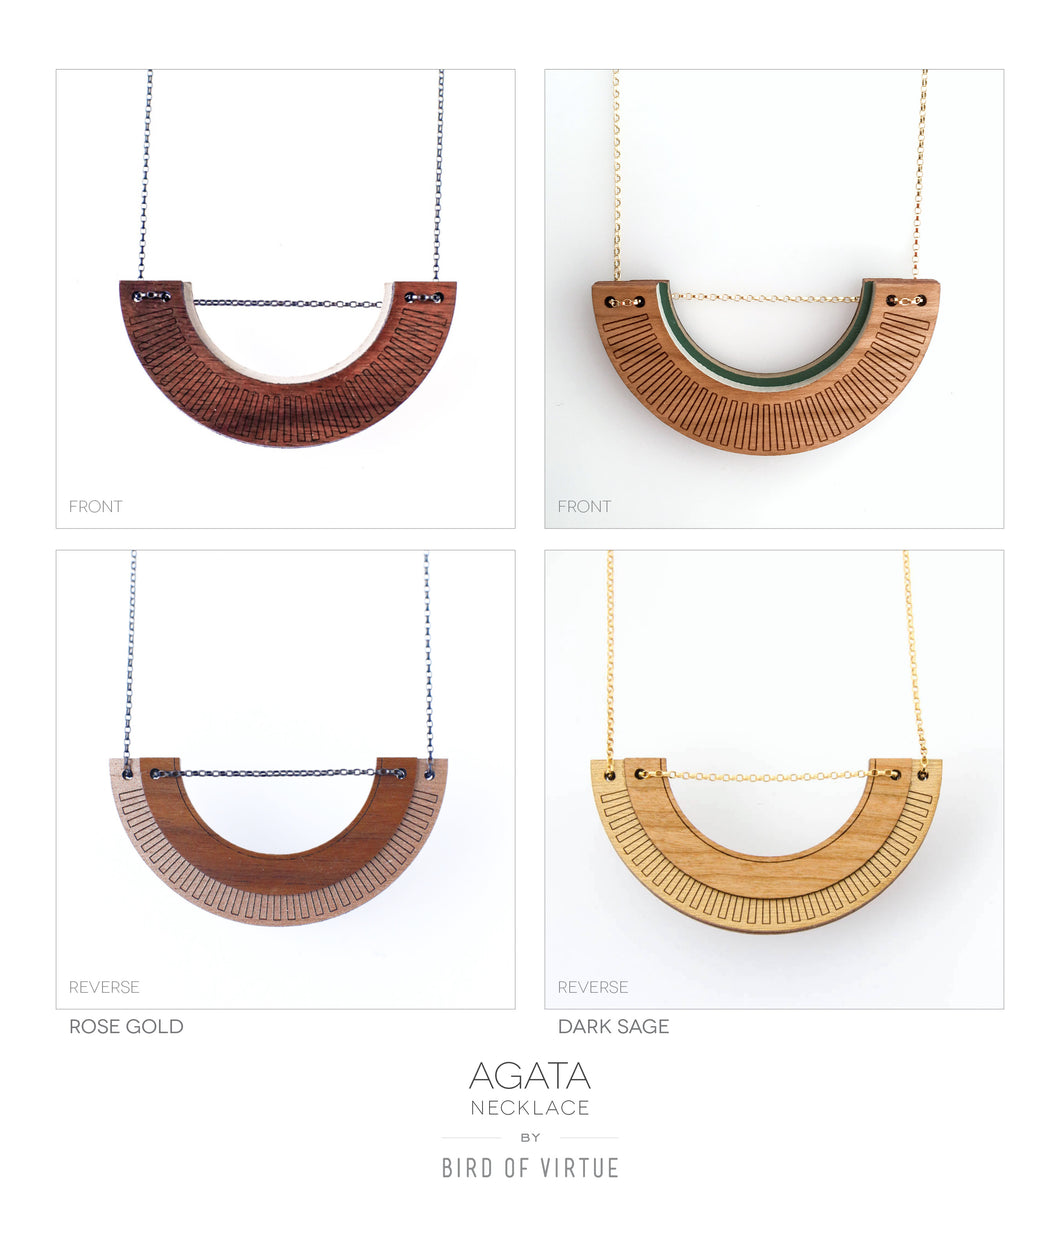 Agata Necklace | by Bird of Virtue